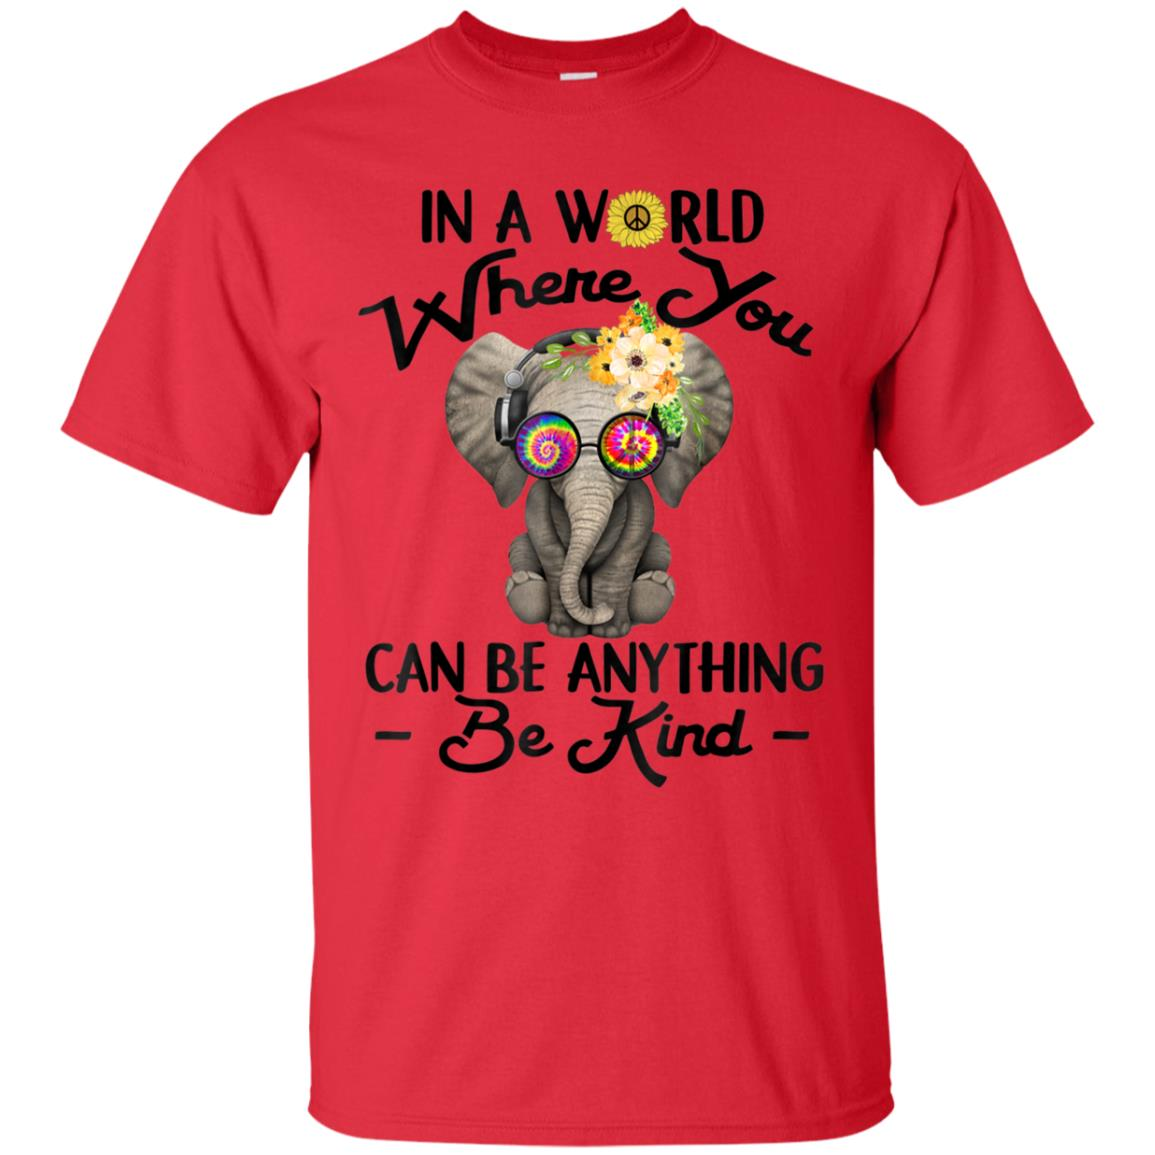 919254c46 Awesome elephant tee in a world where you can be anything kind shirt ...